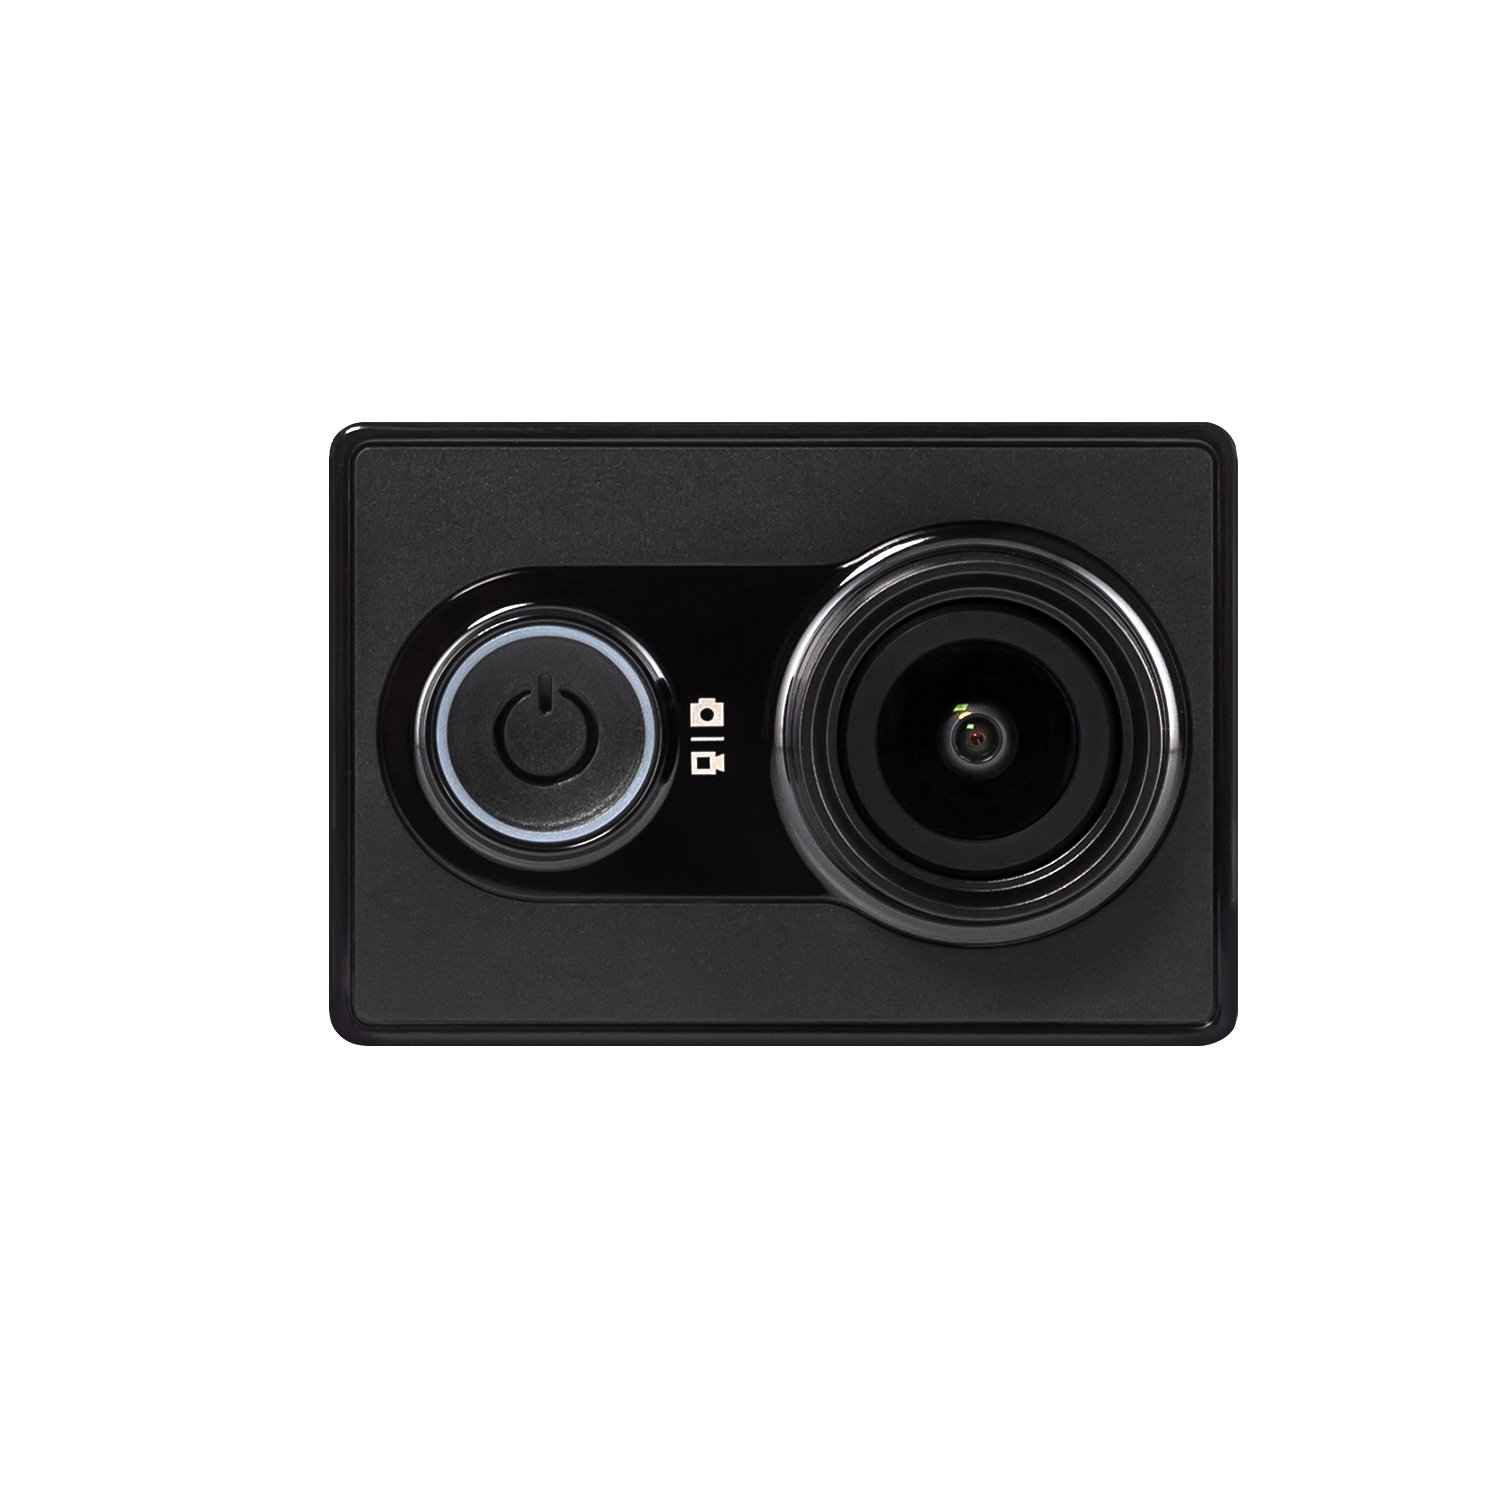 YI® Action Camera Black (Official U.S. Edition) - Sports Camera, 16MP Sony Sensor, High-Resolution, 2Kp30, 1080p60 HD video, 155° Wide angle Lens, Ambarella A7LS Processor, Wi-Fi Bluetooth